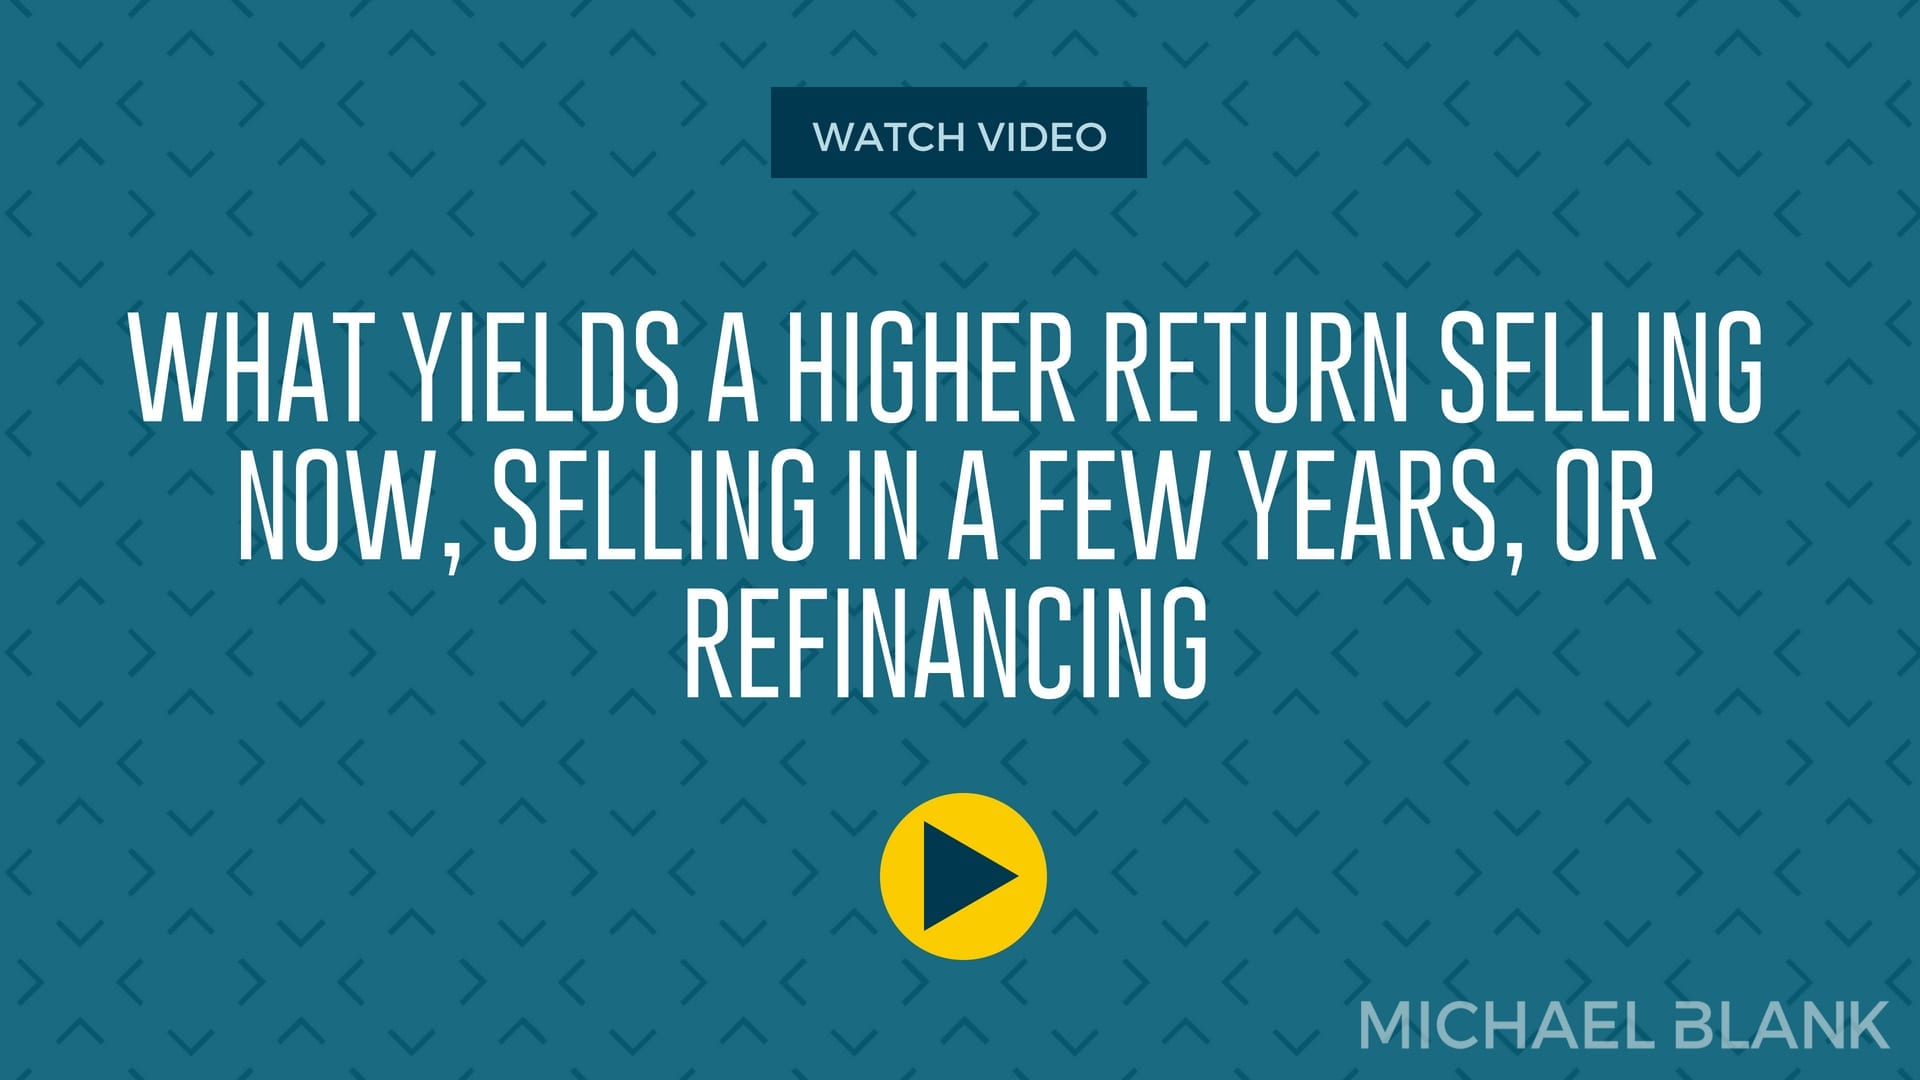 What Yields a Higher Return Selling Now, Selling in a Few Years, or Refinancing